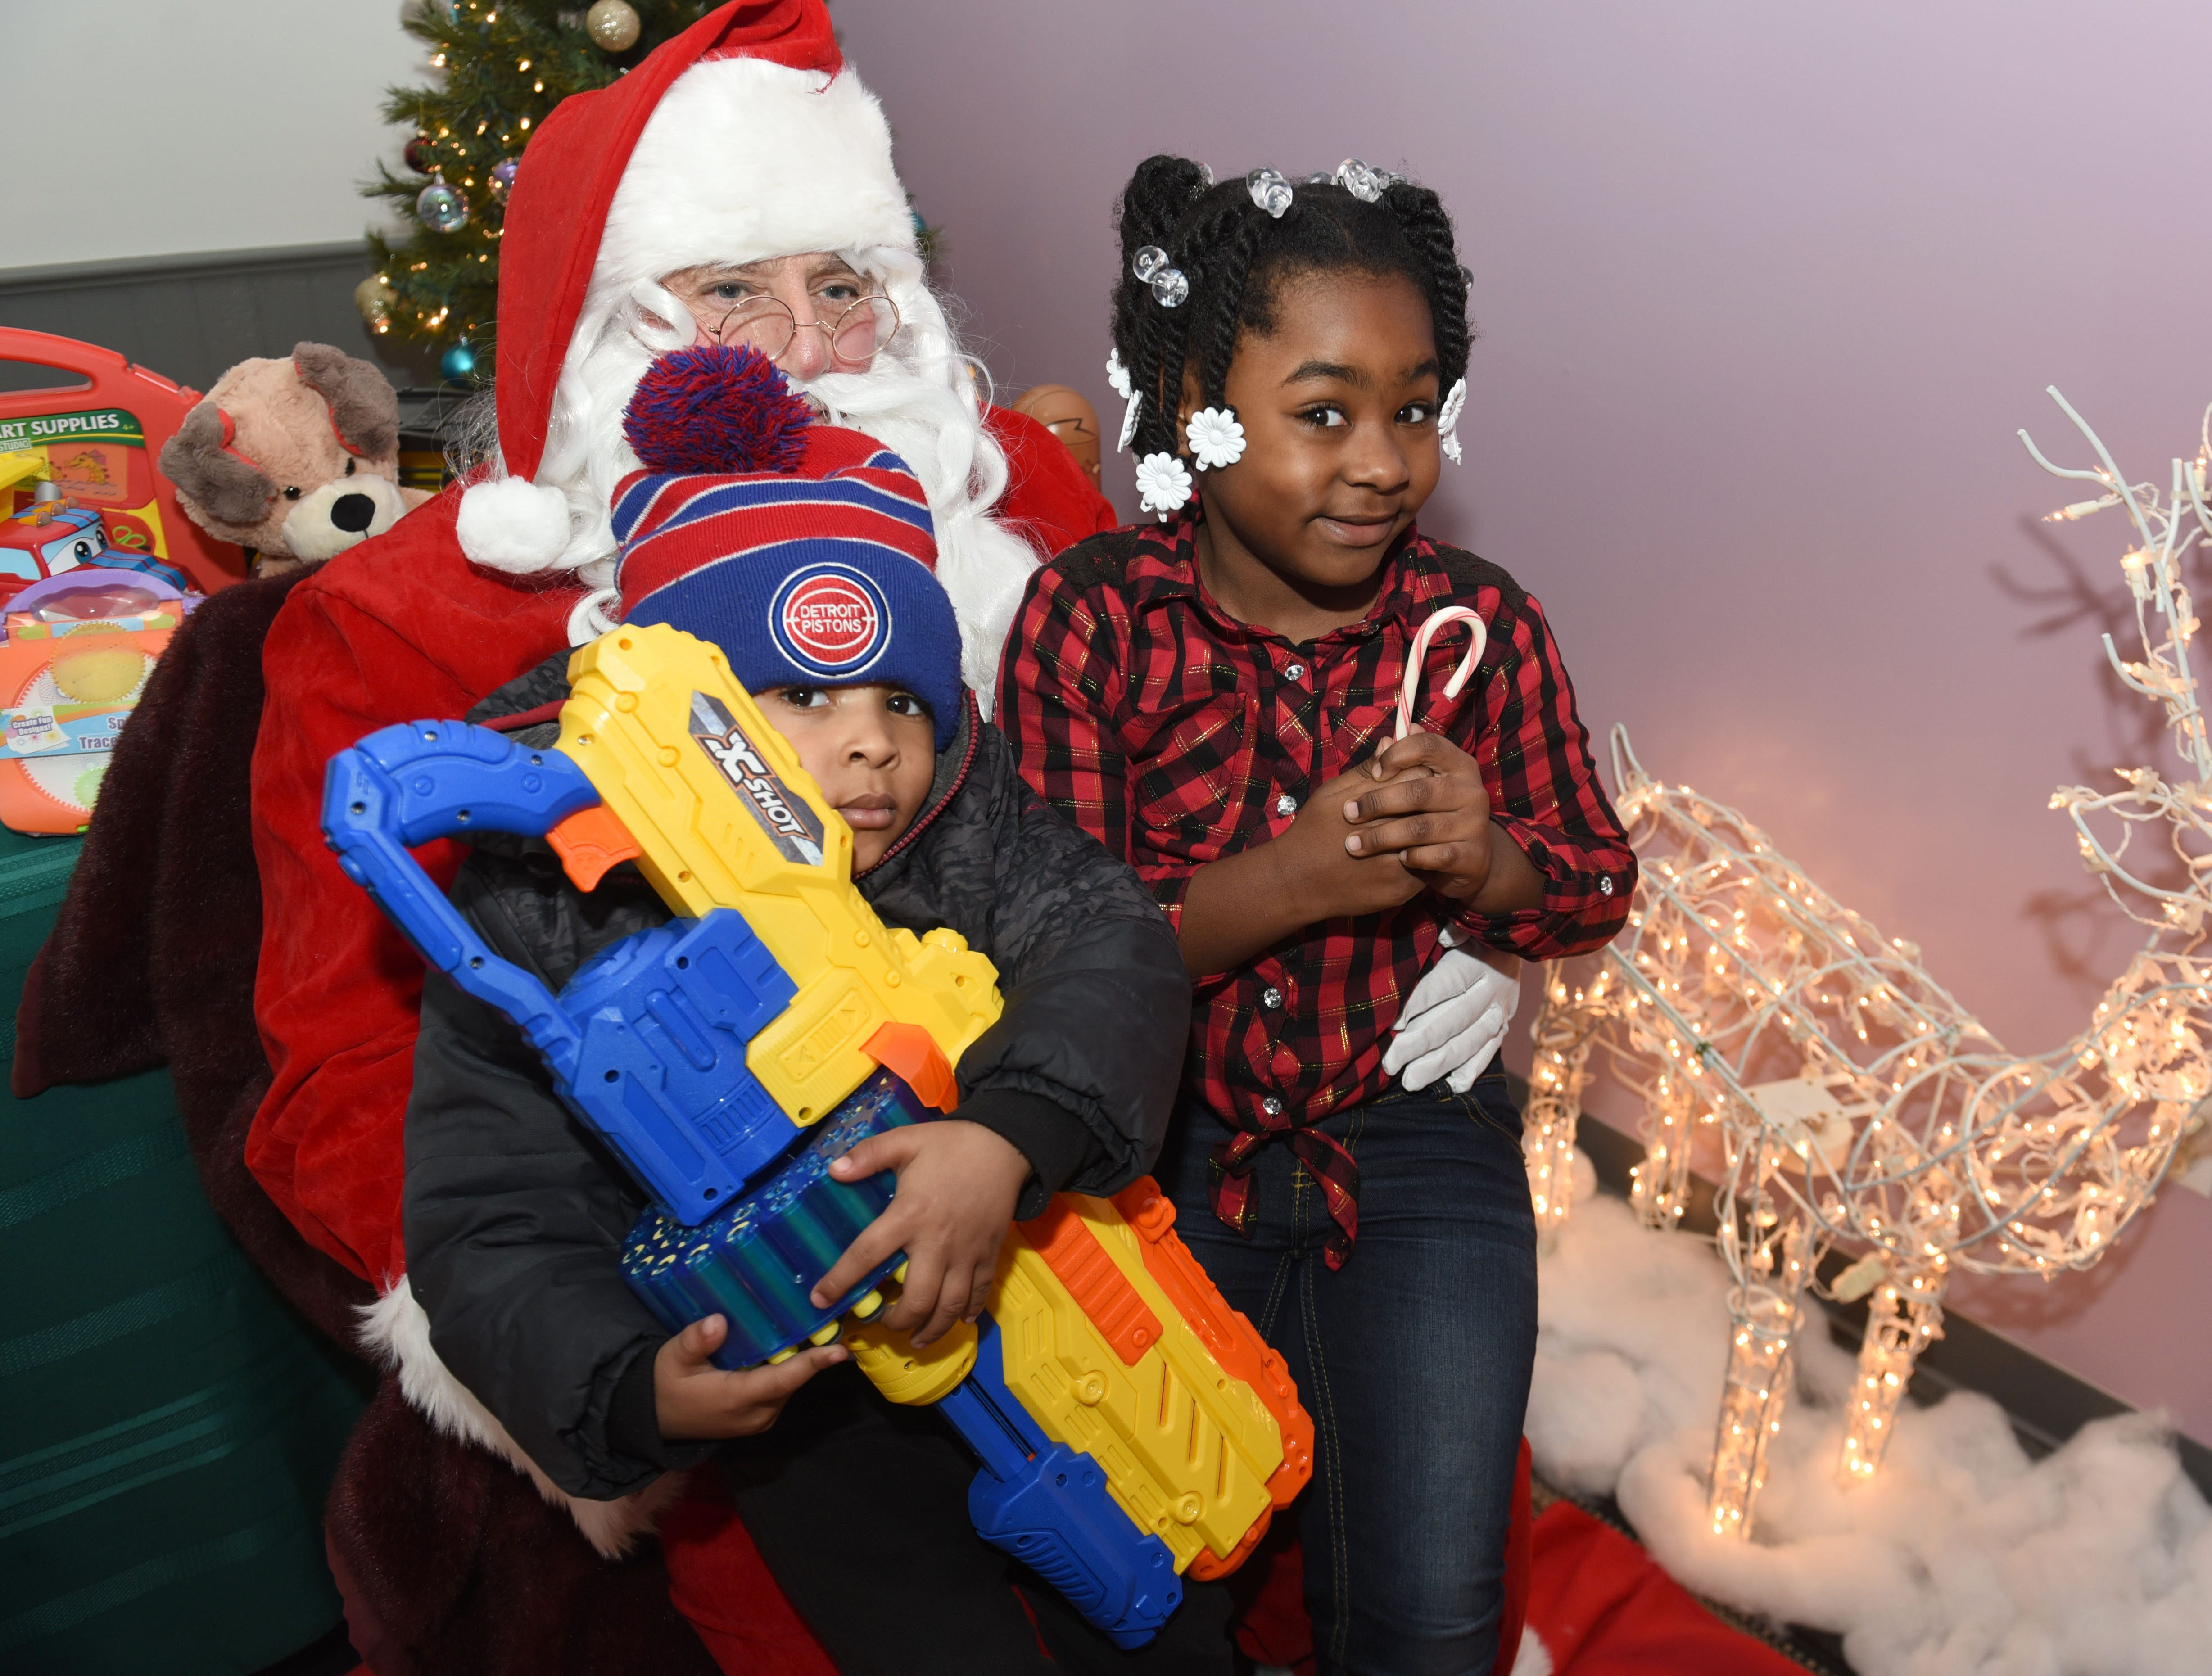 Shane Gilford (left), 3, and his sister Shayna get an early visit with Santa Claus at the Mosaic Midtown during Noel Night.